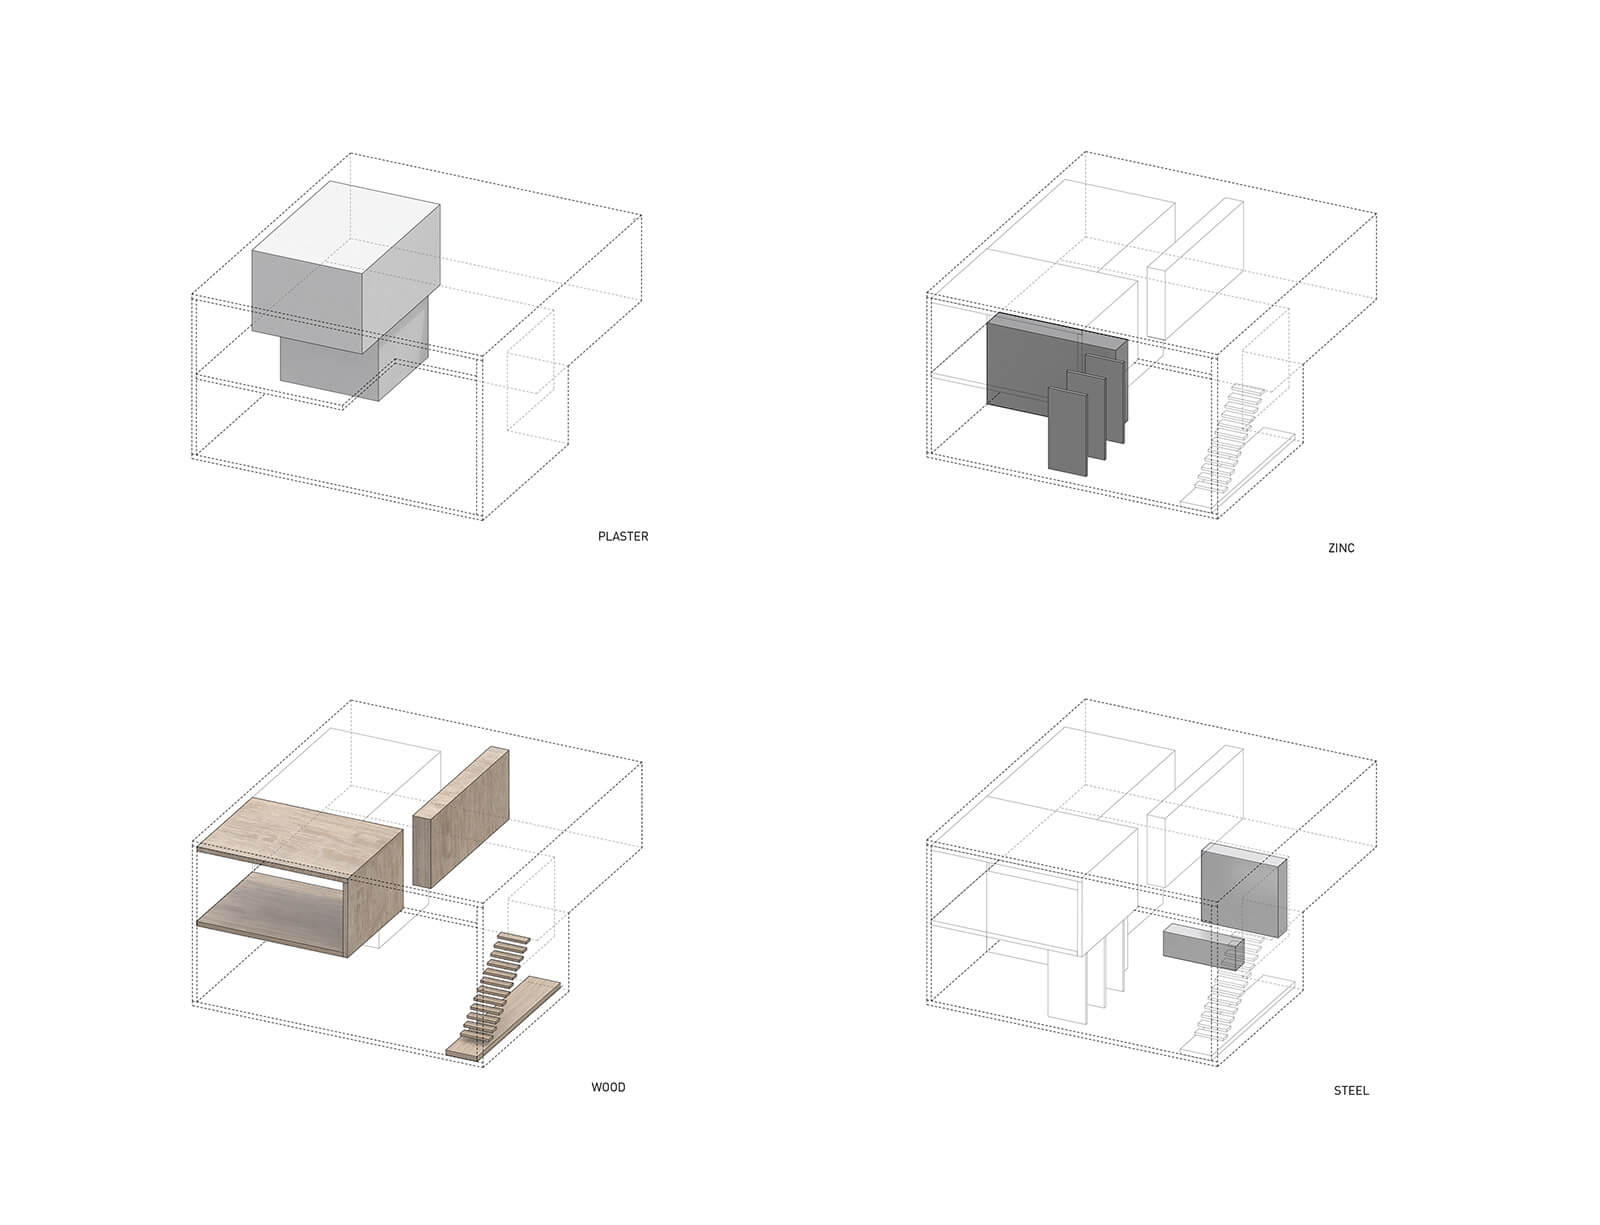 studio vara residential soma loft diagram material distribution